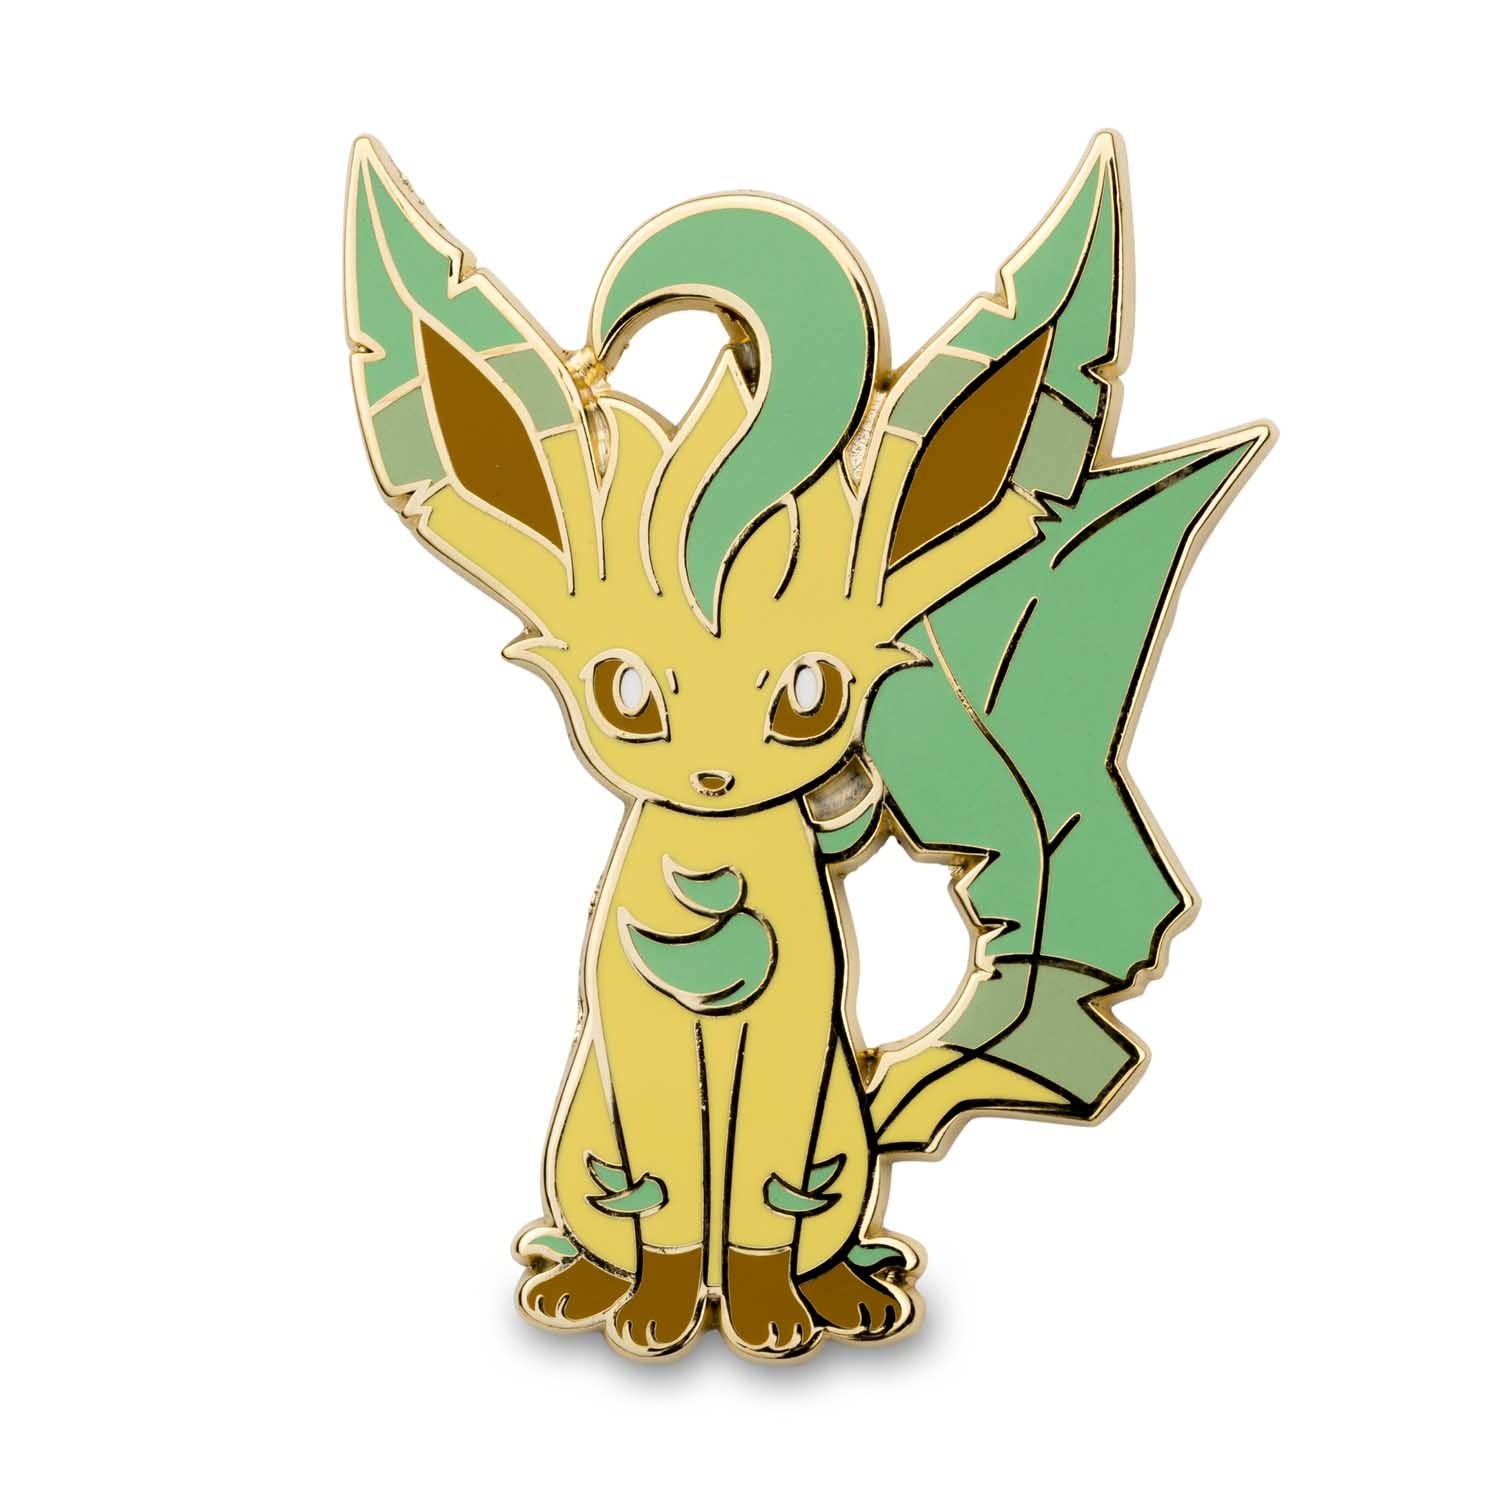 leafeon and glaceon pok mon pins eevee pok mon